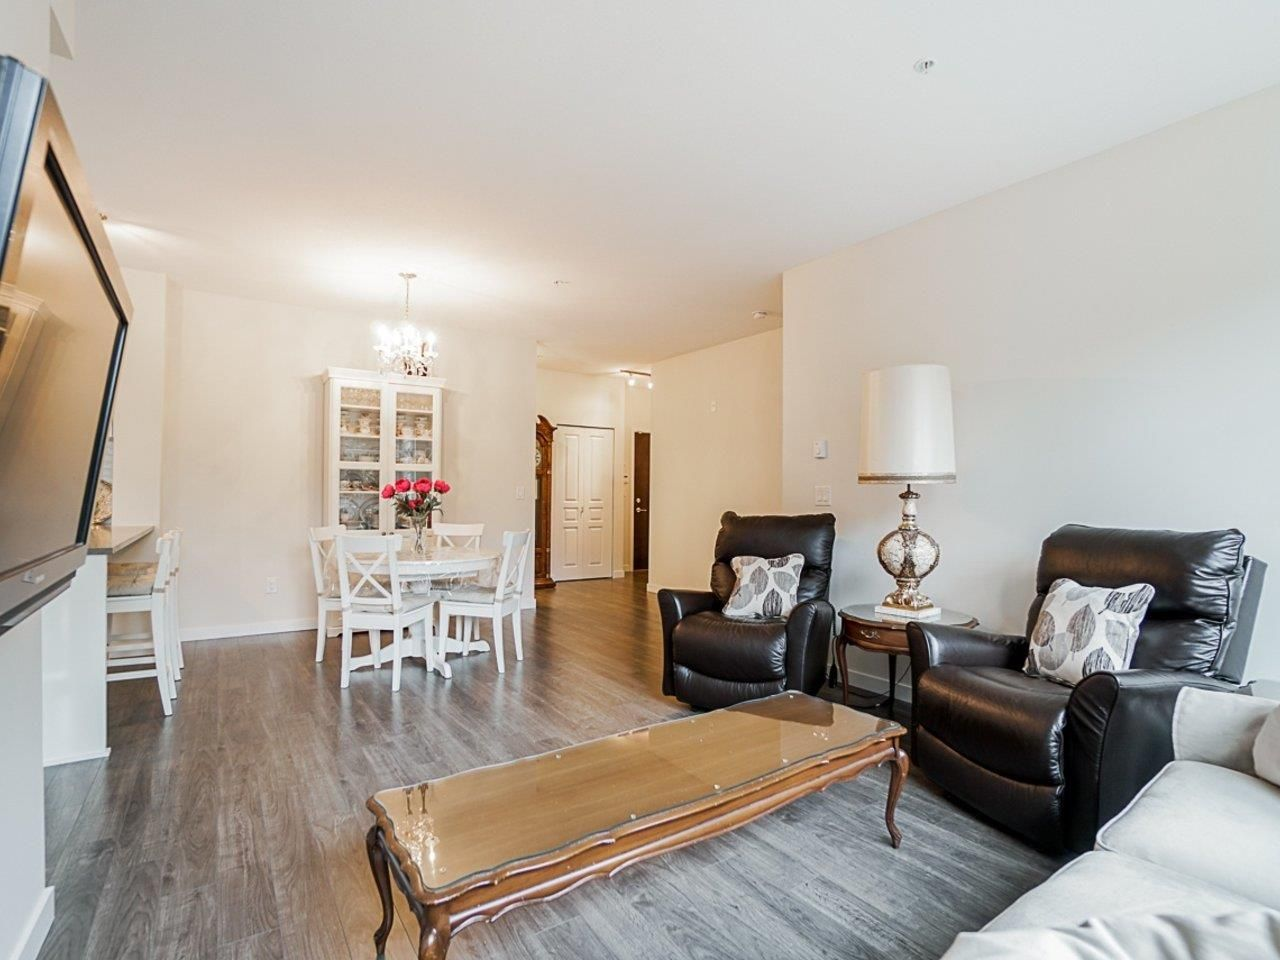 Photo 10: Photos: 108 1151 WINDSOR Mews in Coquitlam: New Horizons Condo for sale : MLS®# R2500299